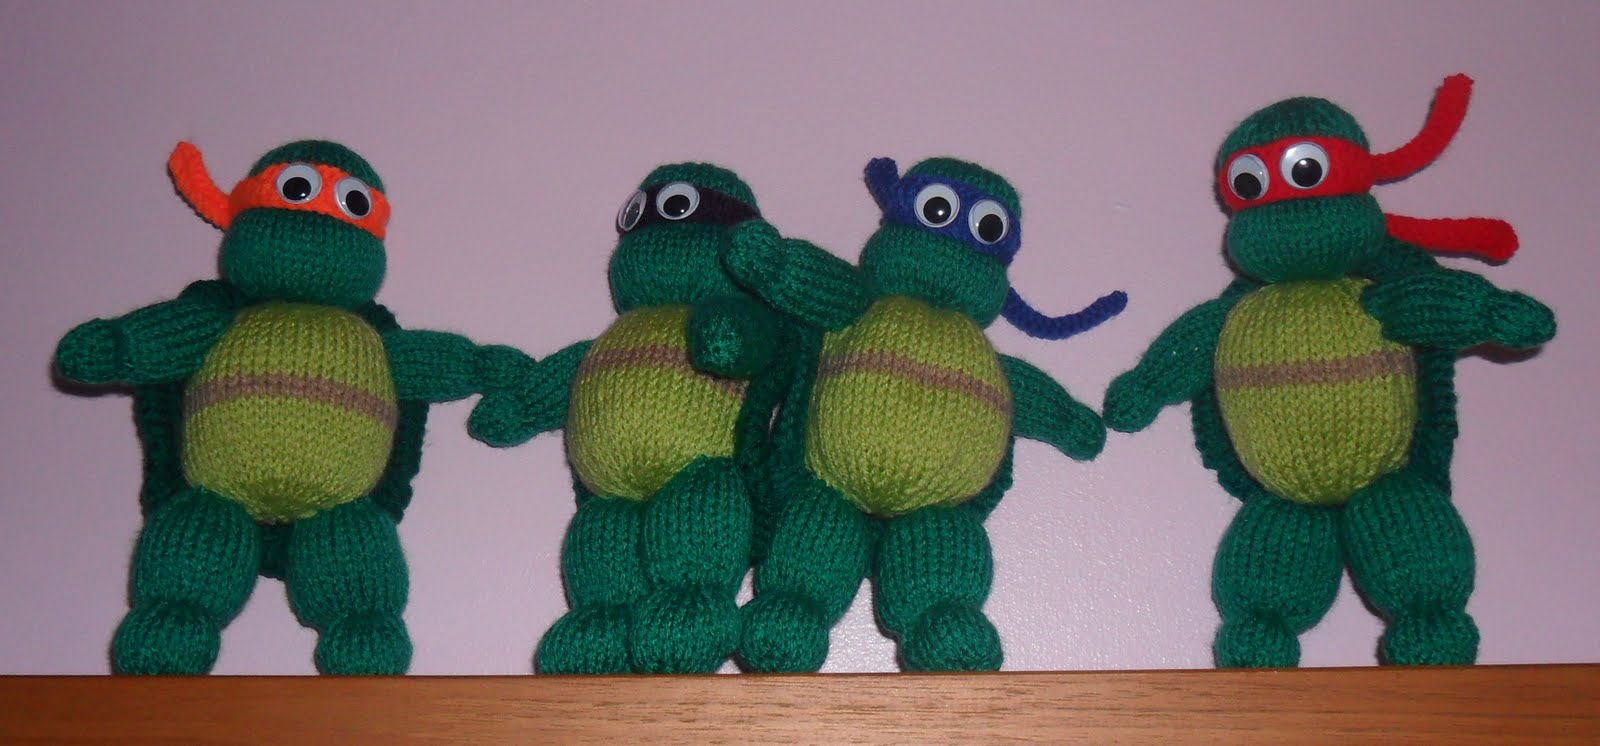 Knitted Turtle Pattern : Busy Crafting...: Teenage Mutant Ninja Turtles Knitting Pattern to Knit Actio...